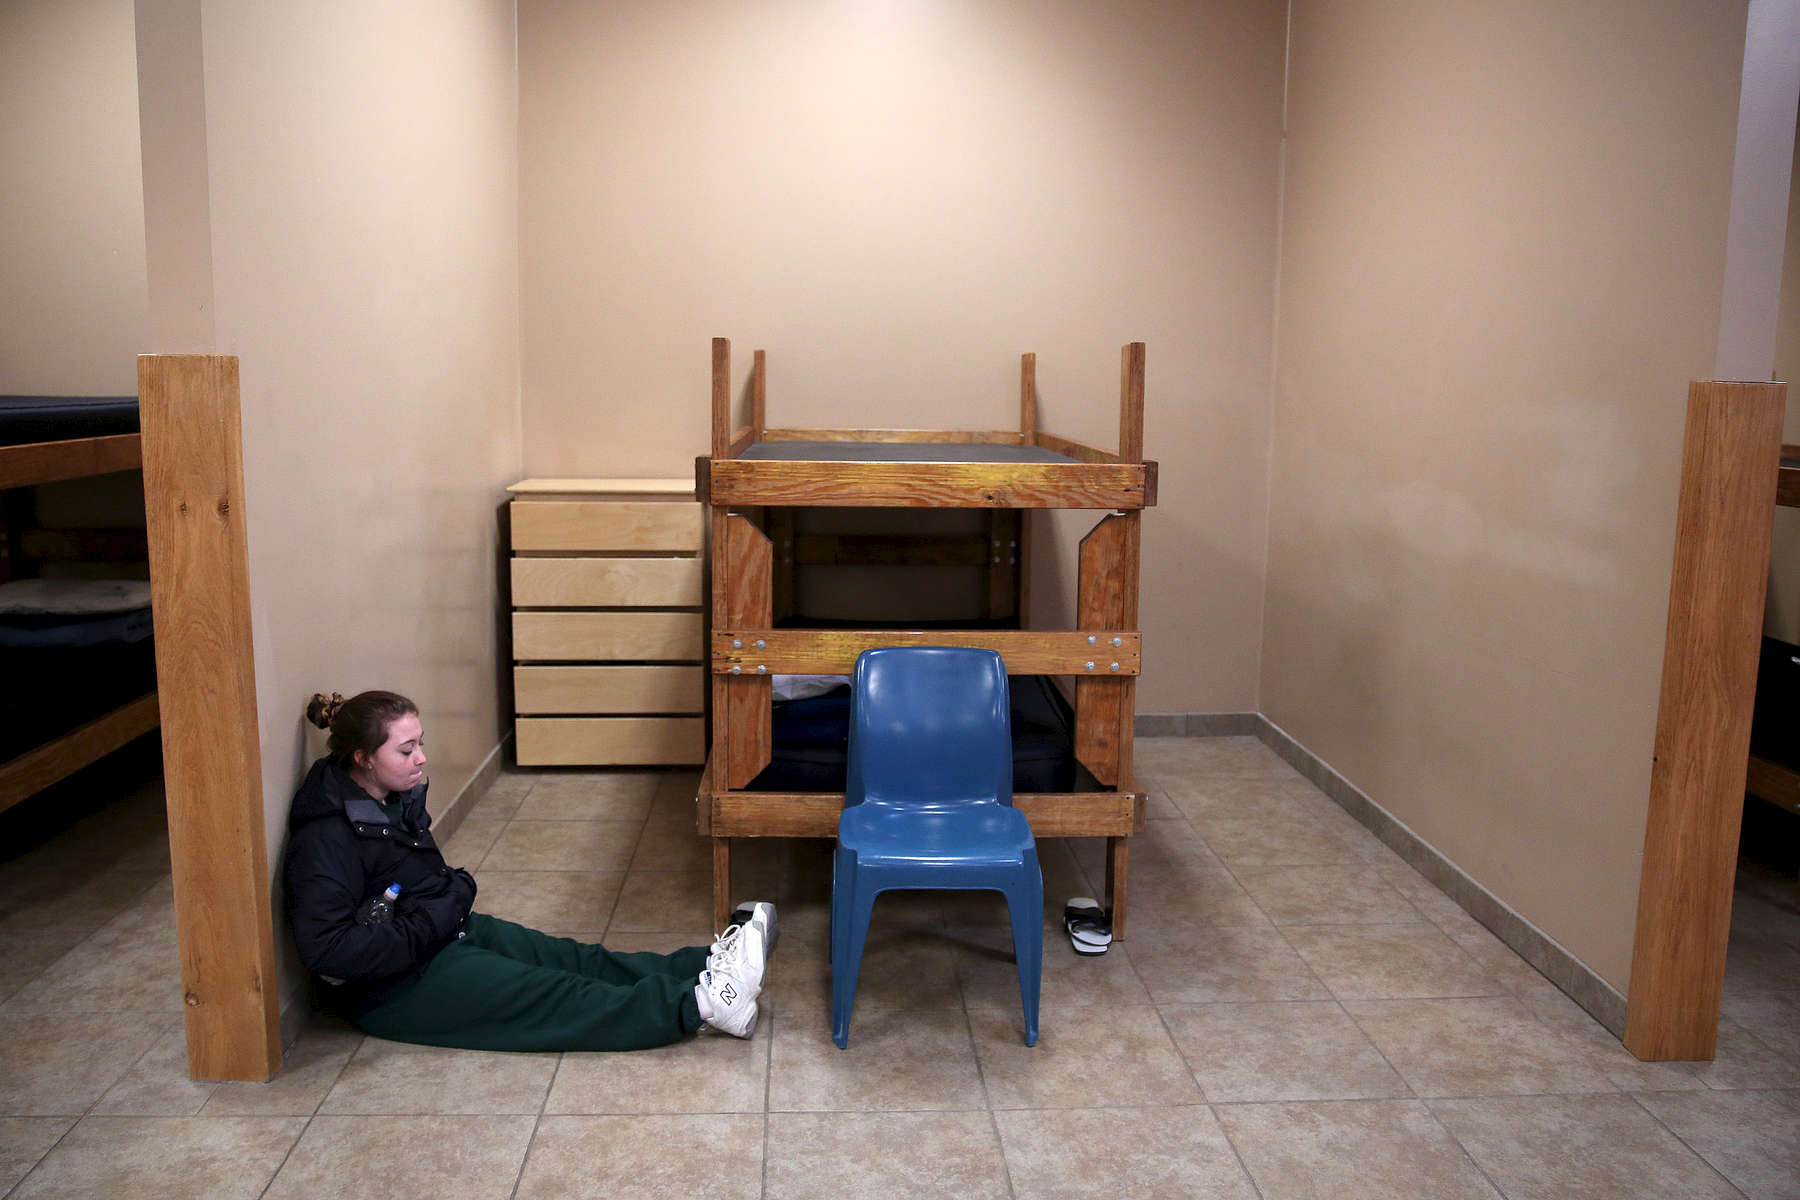 Desiree, 15, a resident at the Pioneer Work & Learn Center operated by Wolverine Human Services sits on the floor near her bed as she waits to be called for lunch in Vassar, Mich.